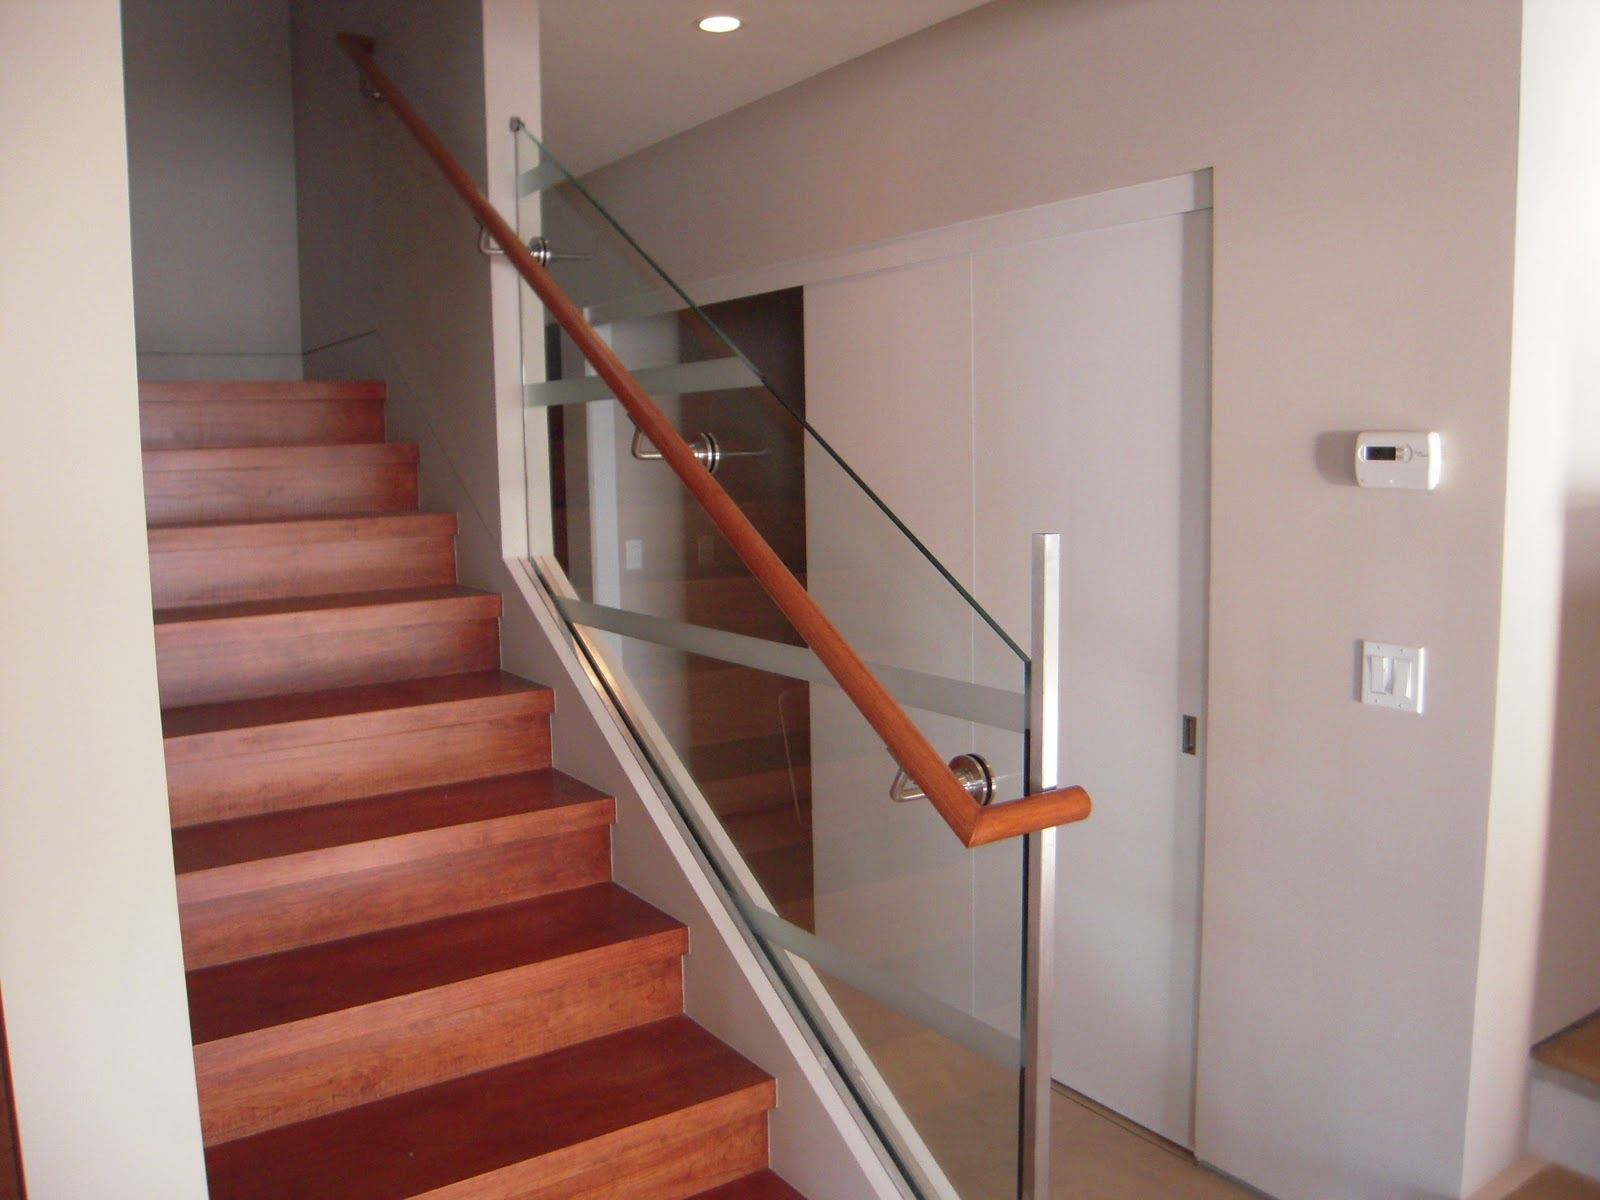 Glass Stair Rail With Glass Mount Railing Hardware • Ot Glass | Glass Balusters For Stairs